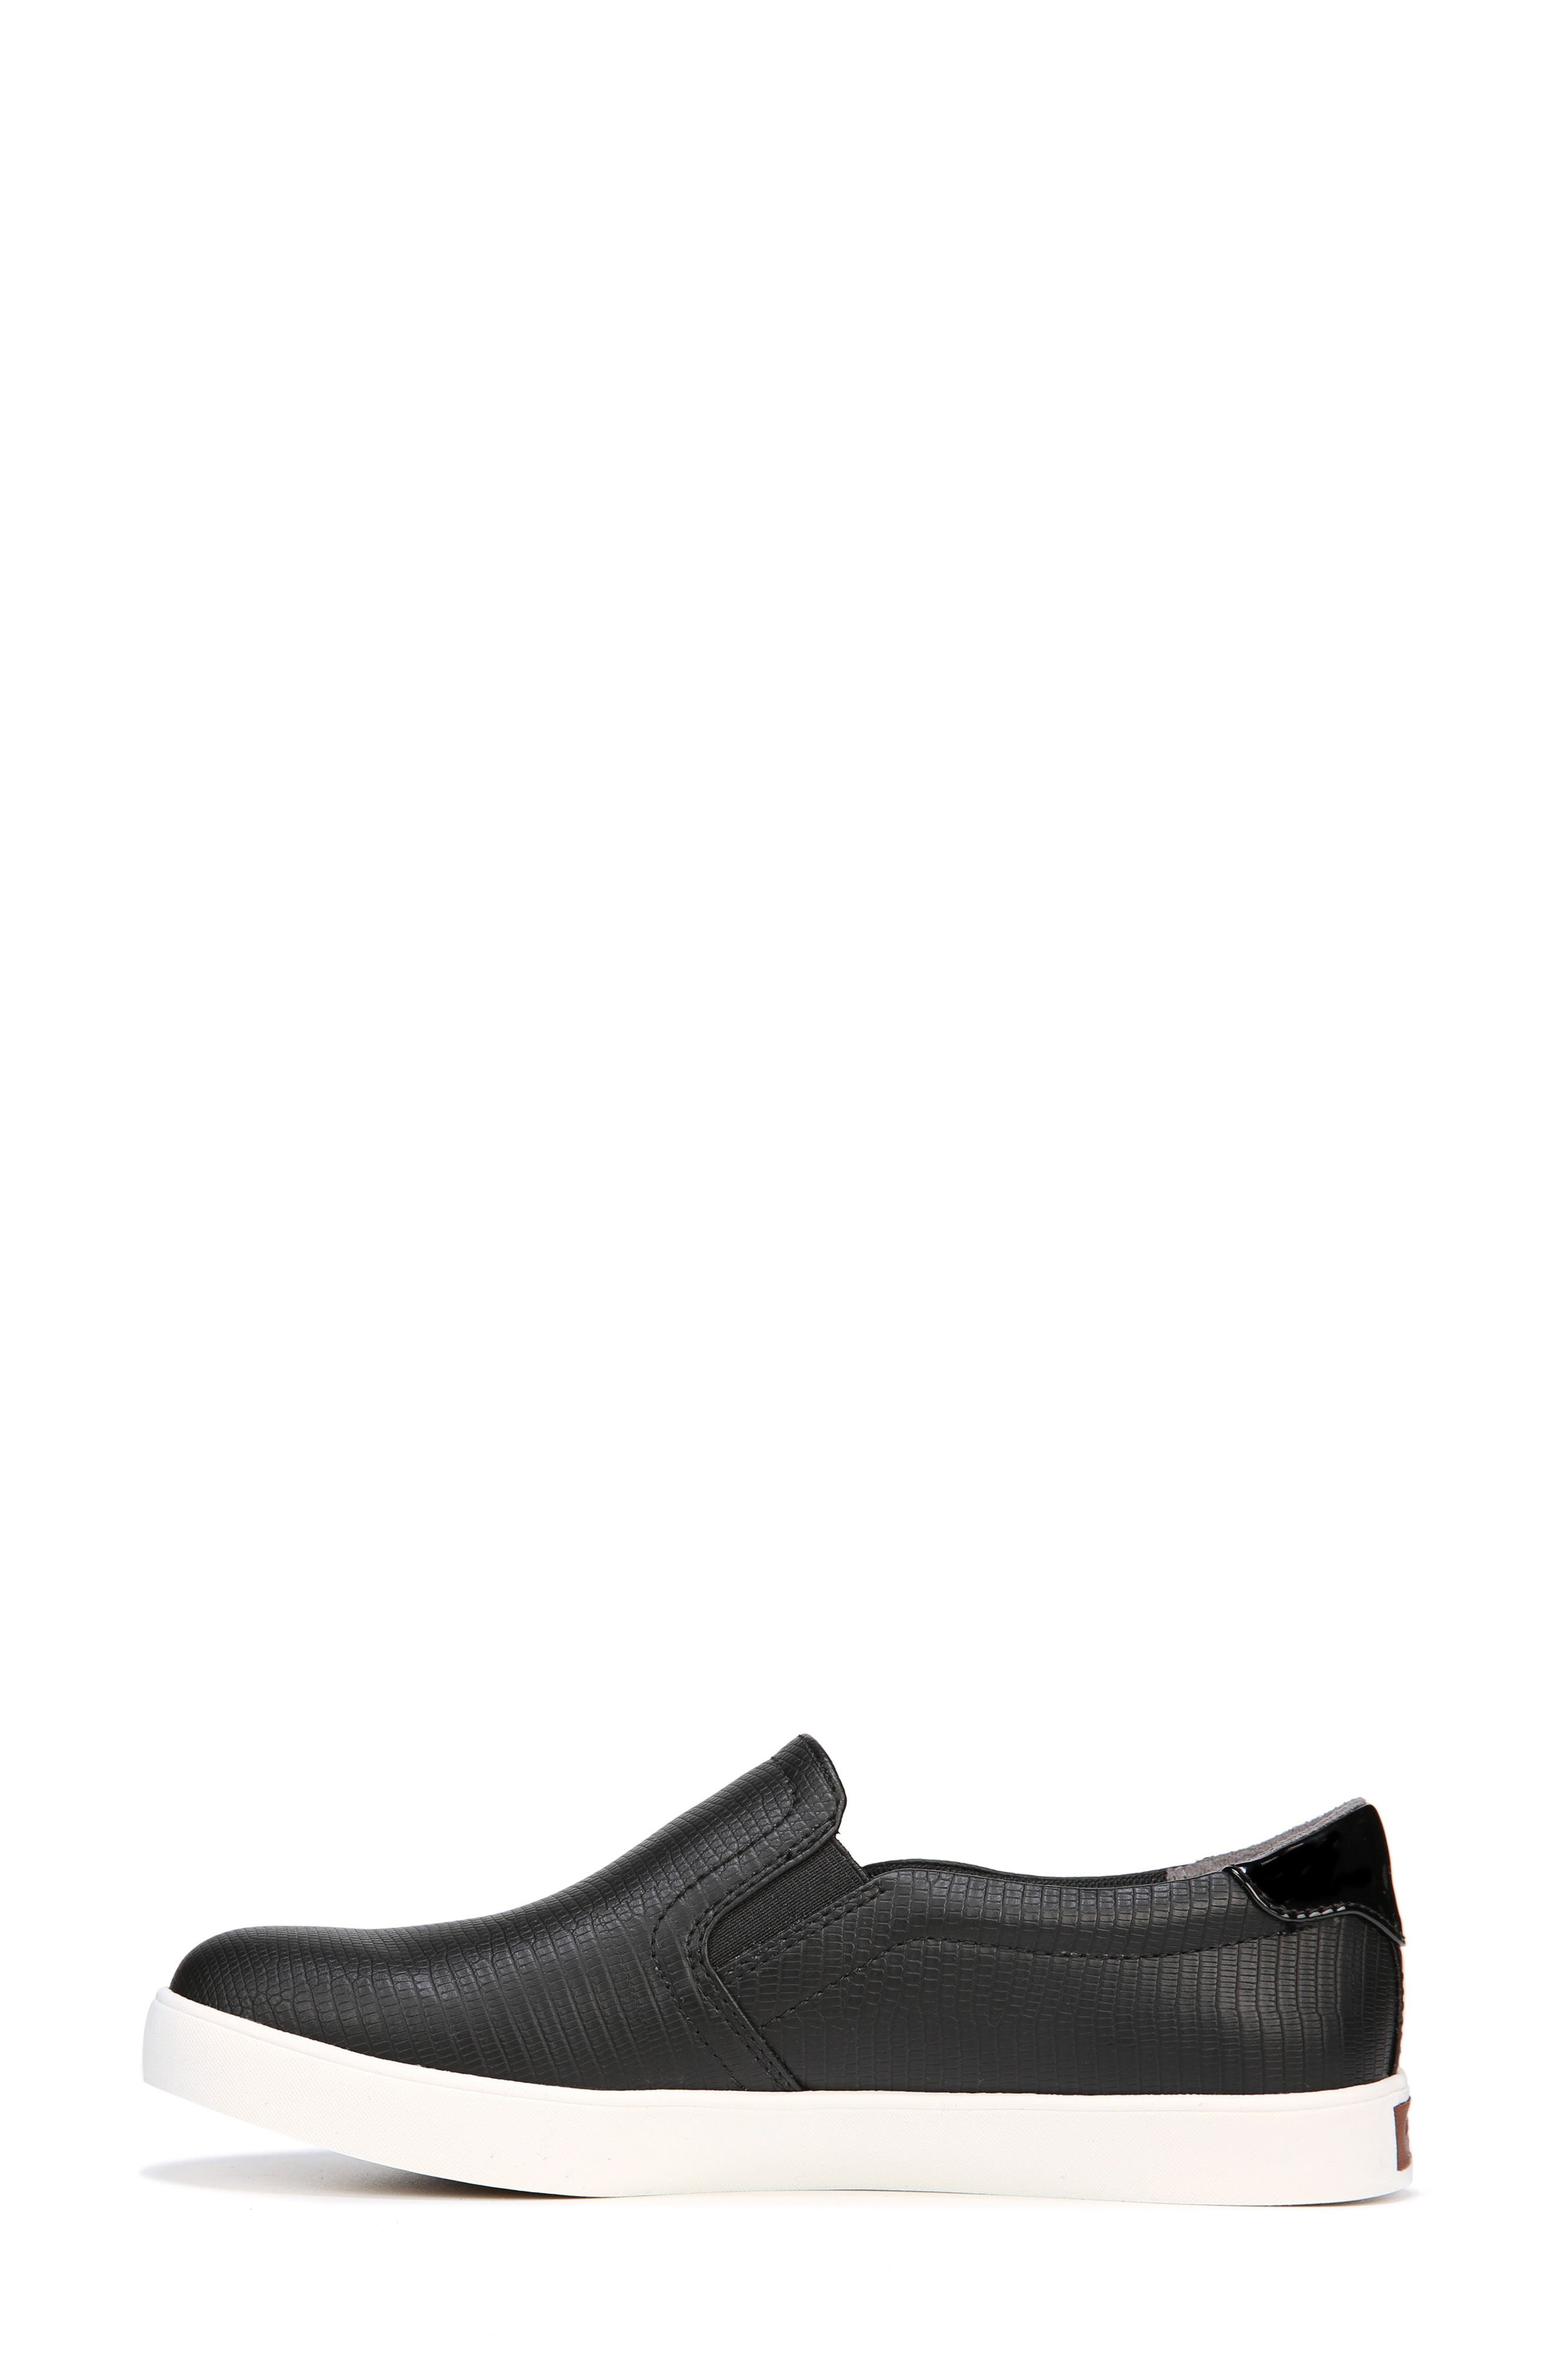 Madison Slip-On Sneaker,                             Alternate thumbnail 8, color,                             BLACK FAUX LEATHER